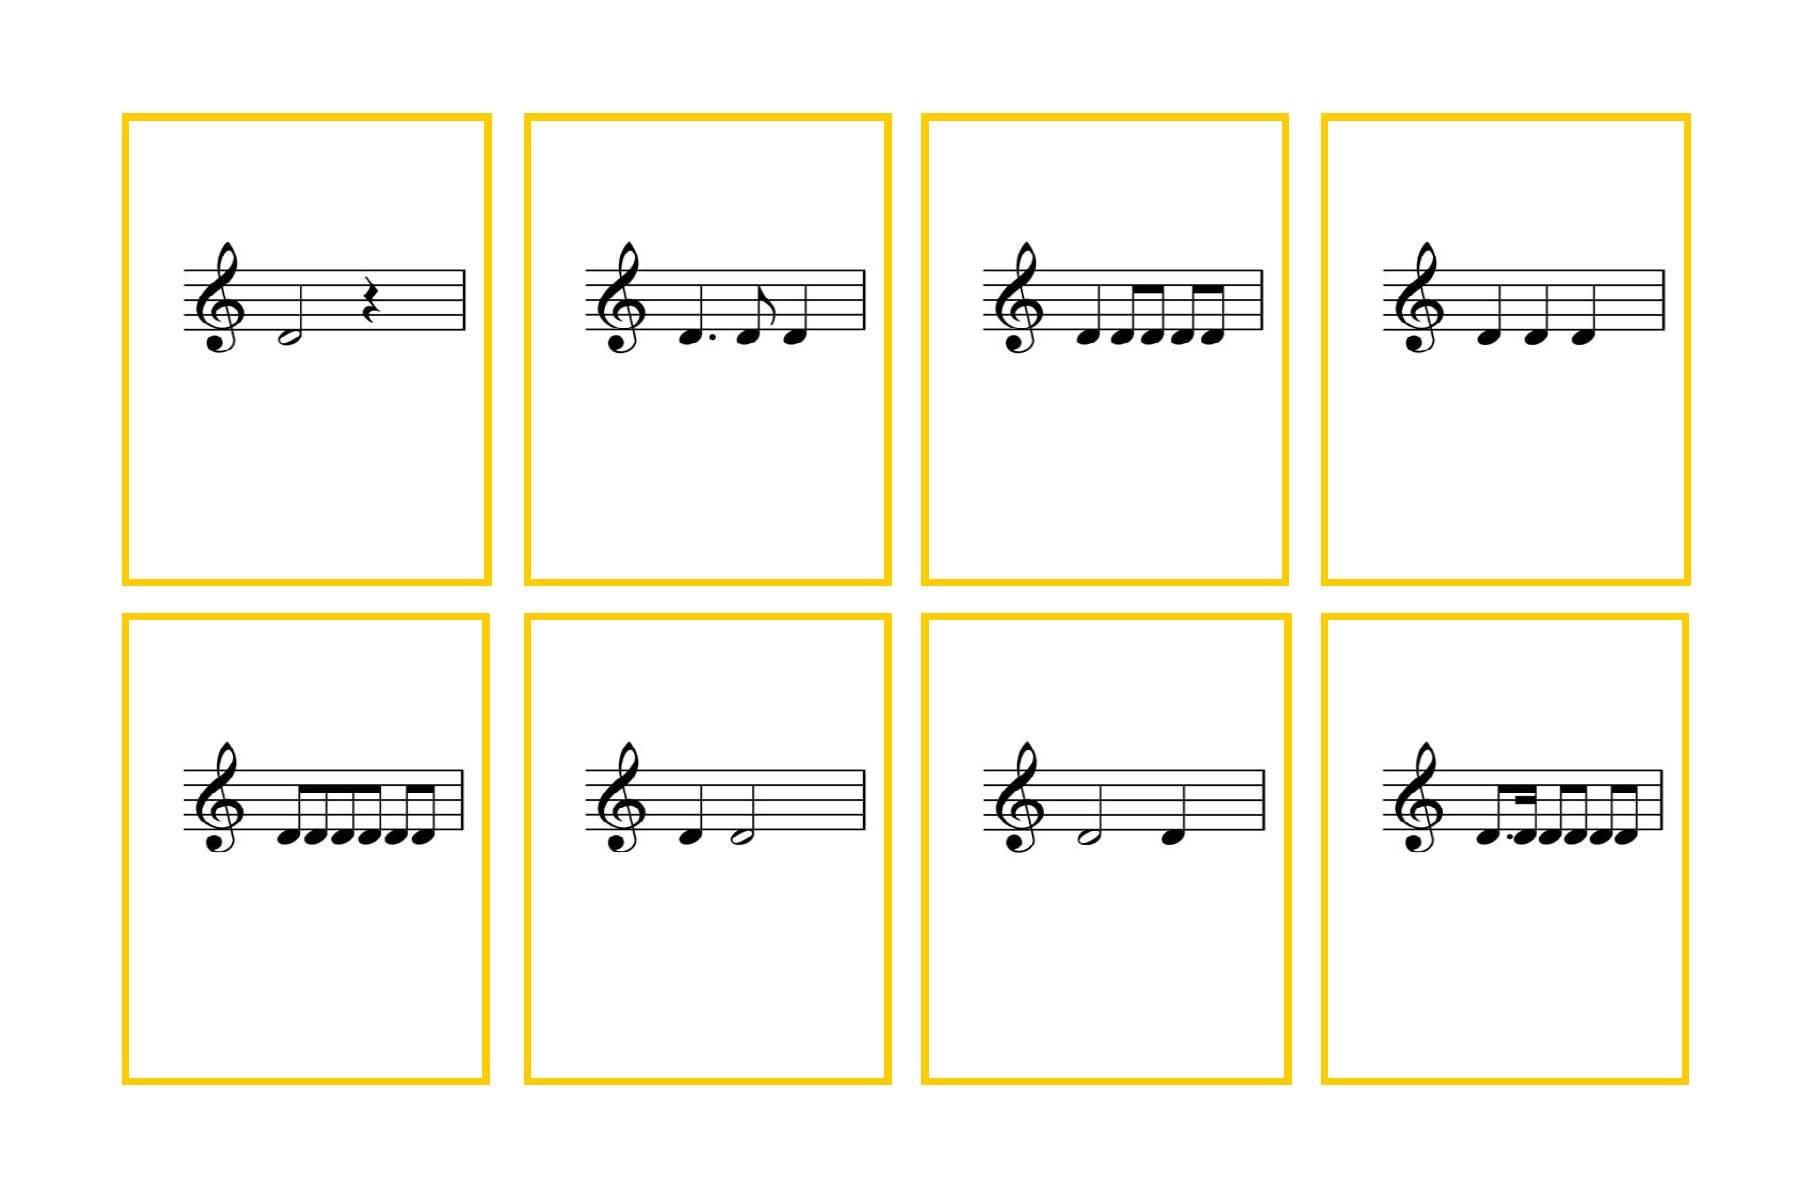 photograph relating to Printable Music Flashcards named Fourth Quality Aural Rhythms Flash Playing cards Denley Audio